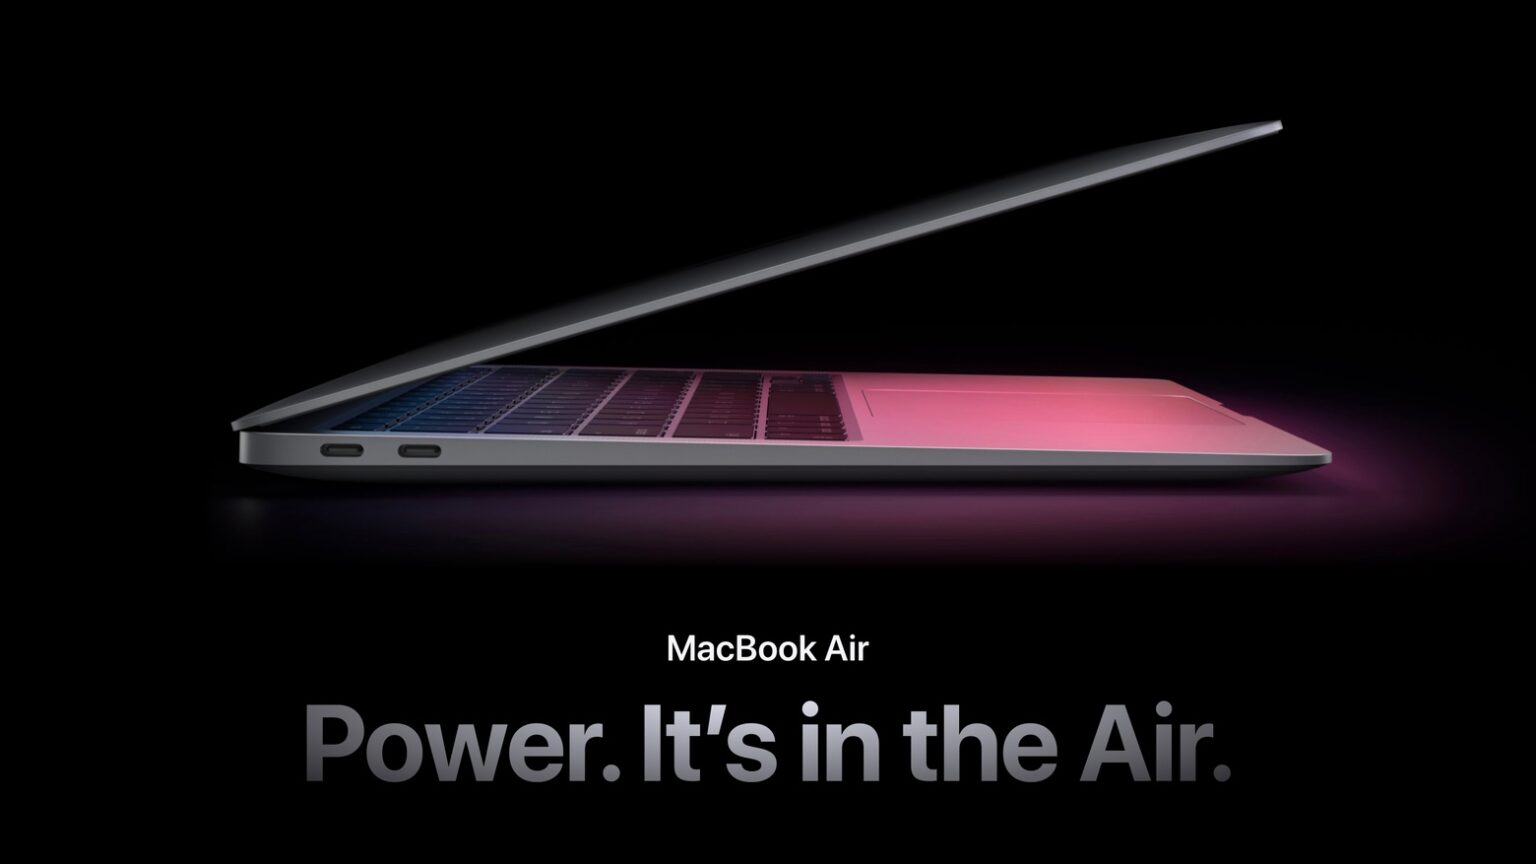 MacBook Air power